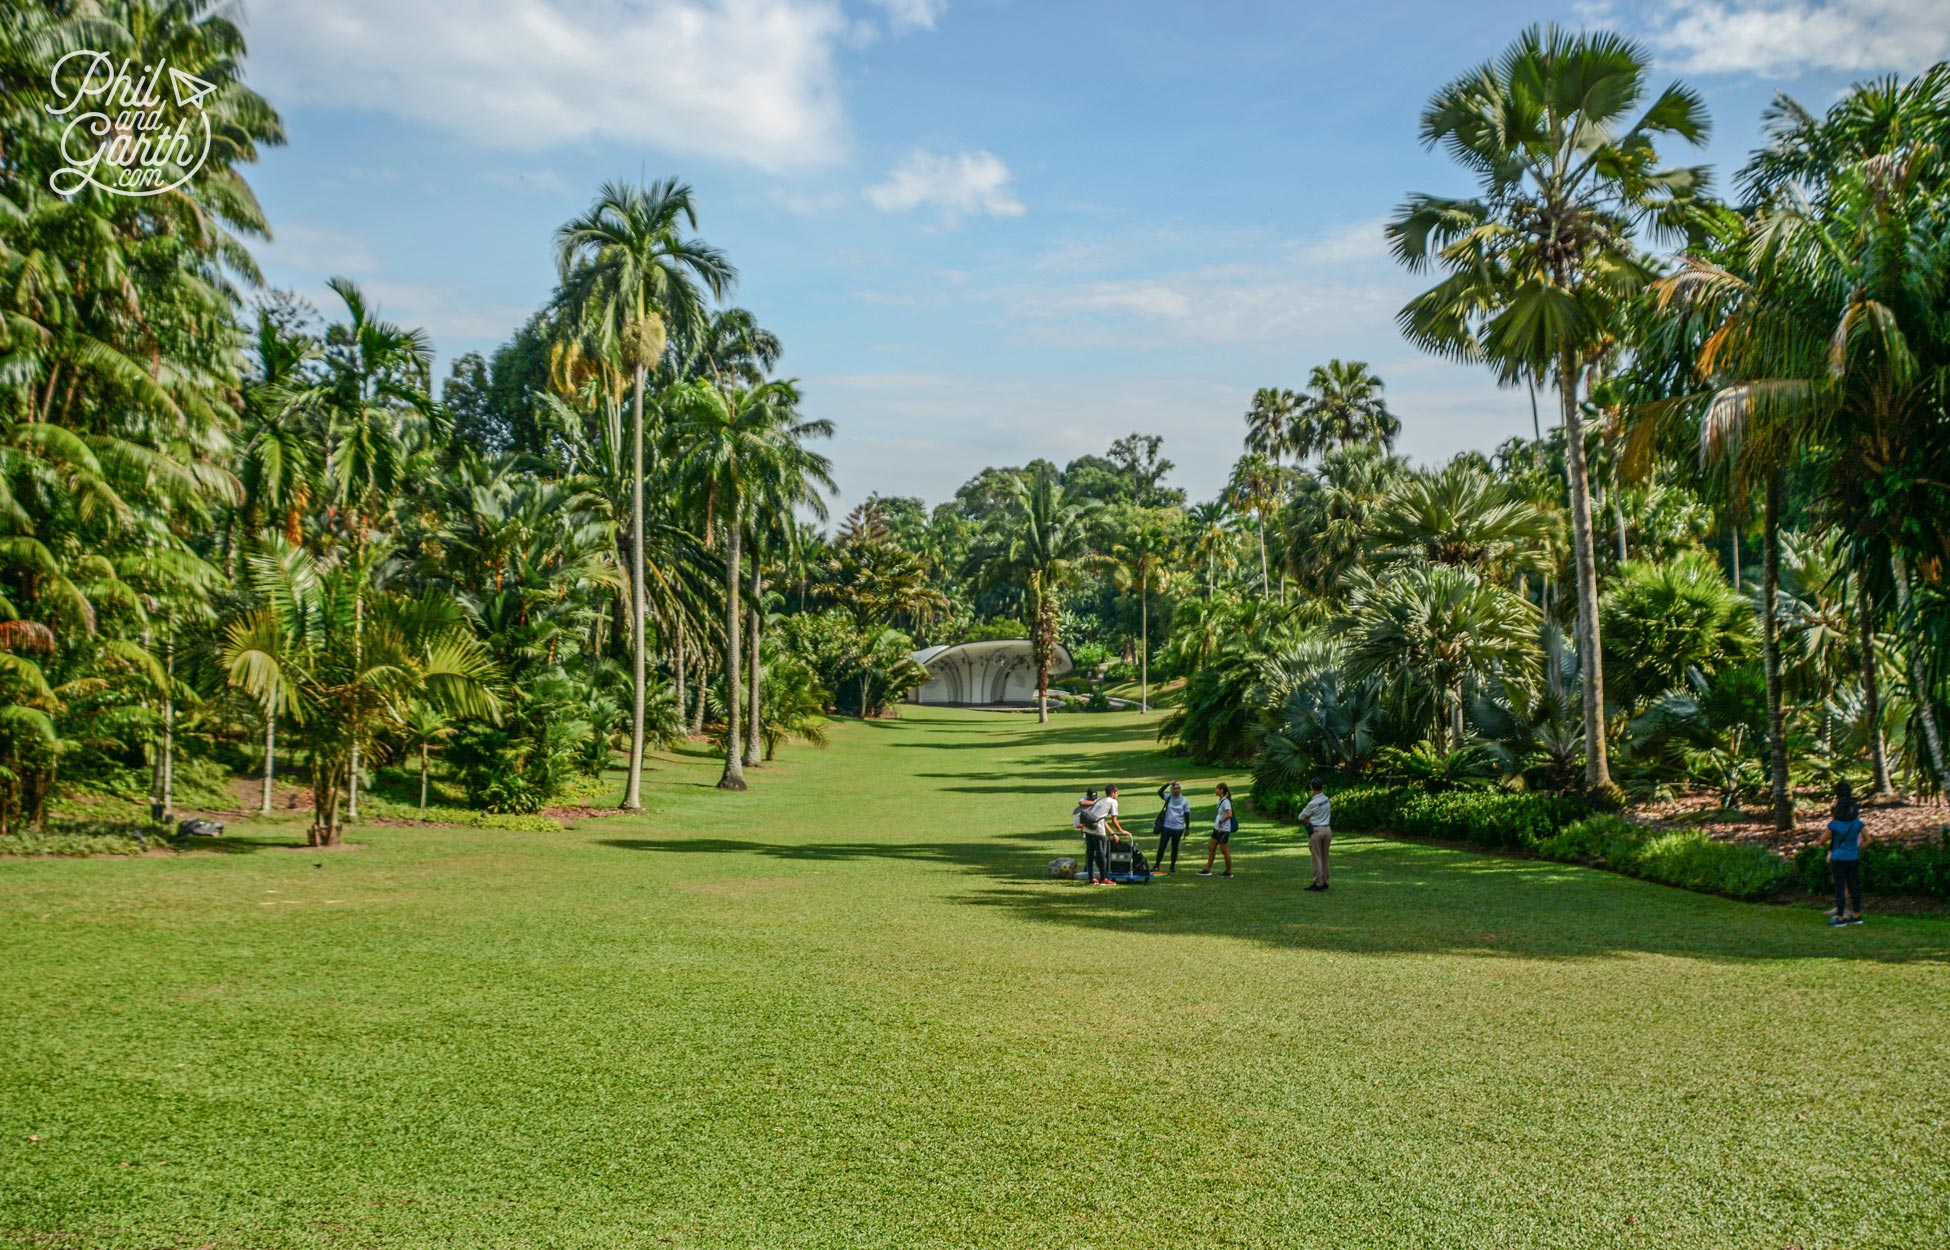 The gardens are popular with locals for jogging and picnicking